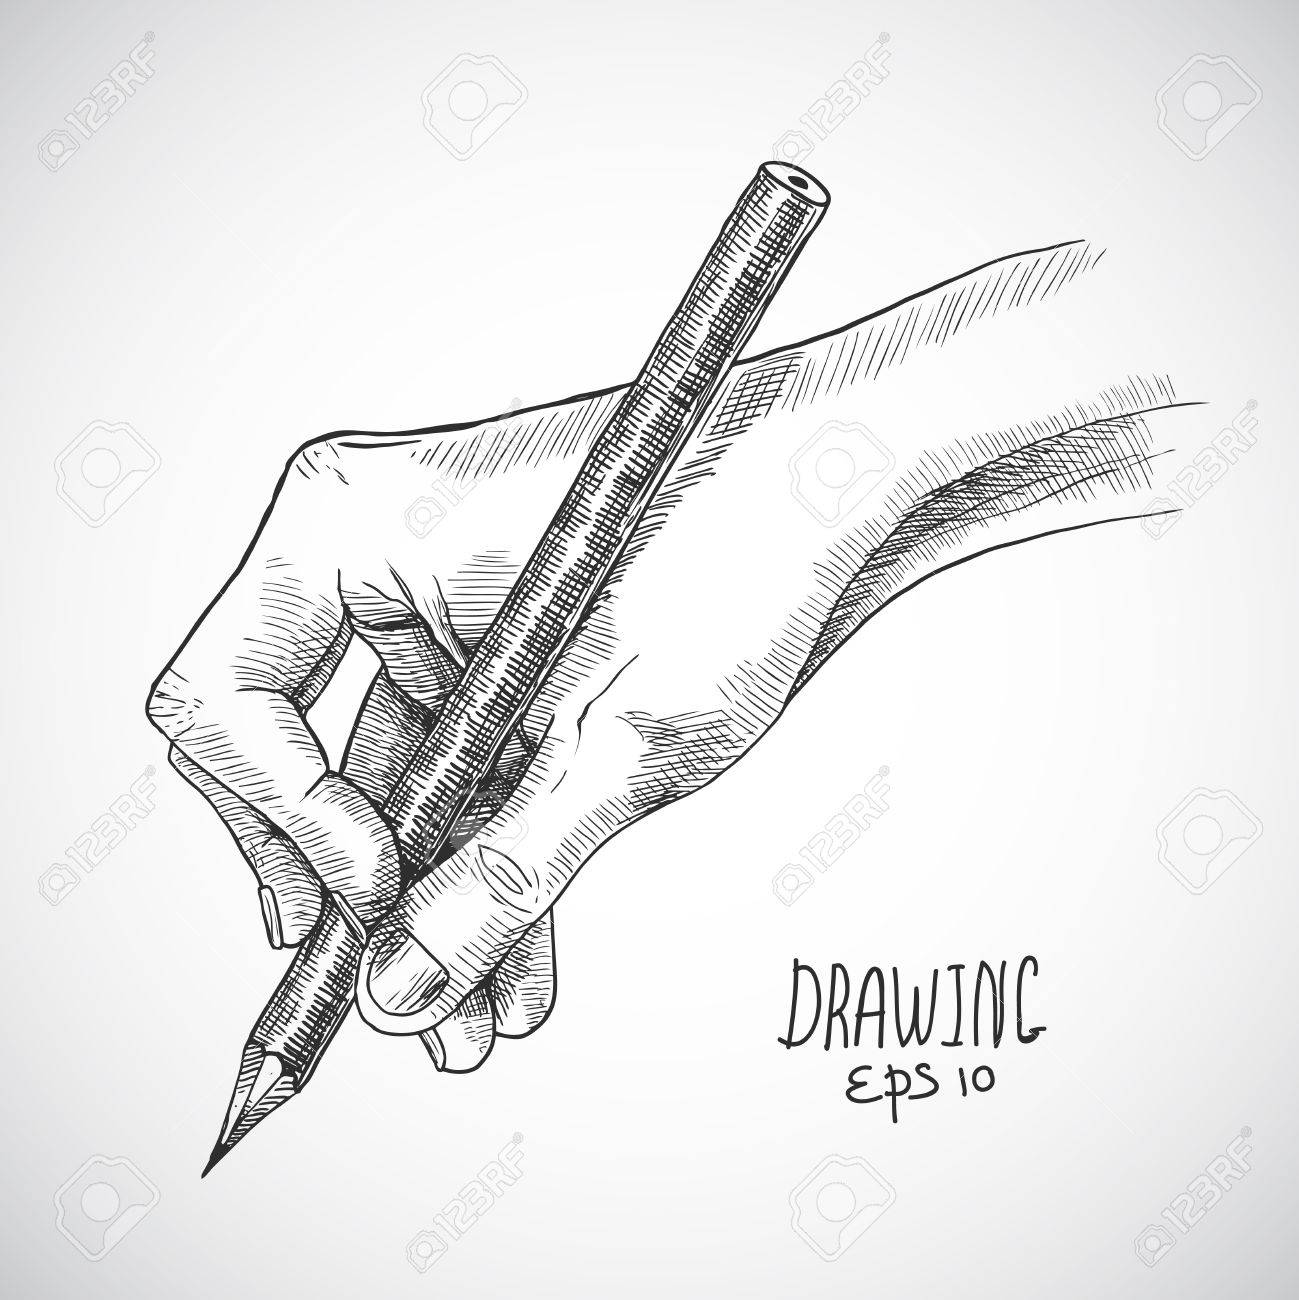 Sketch Of A Pencil